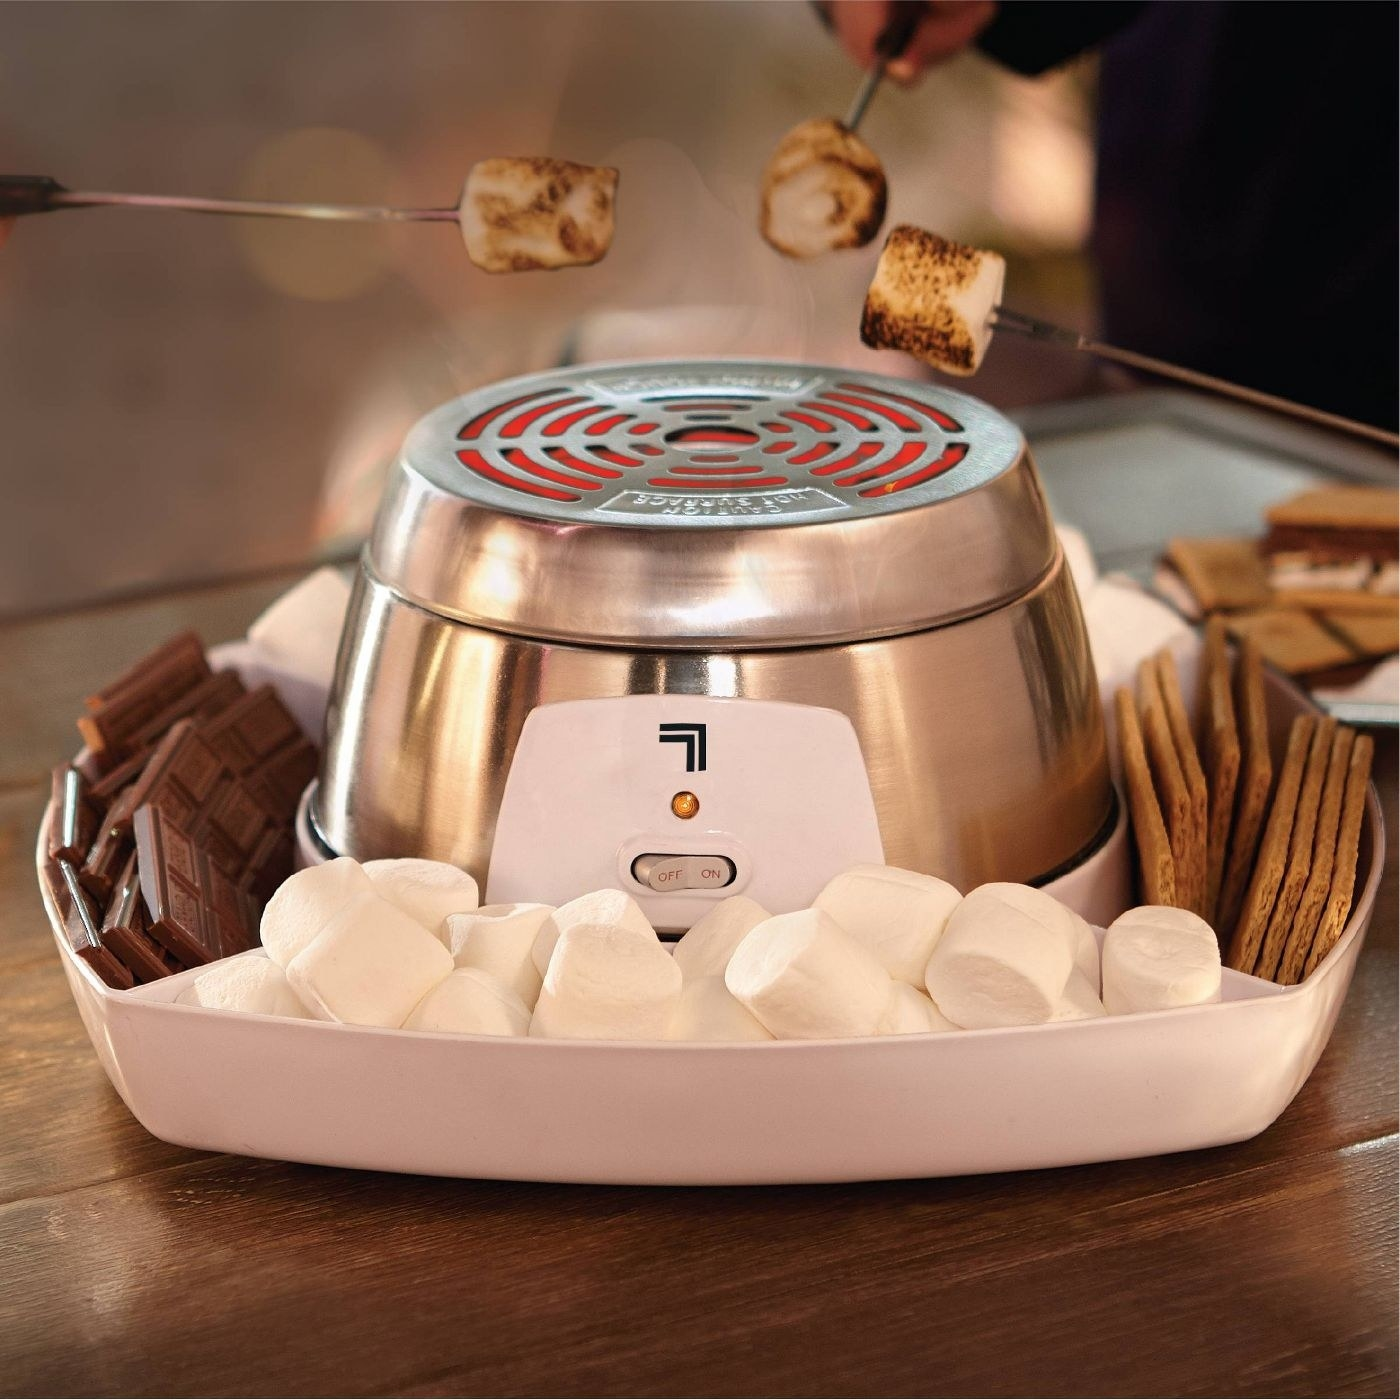 The s'mores maker